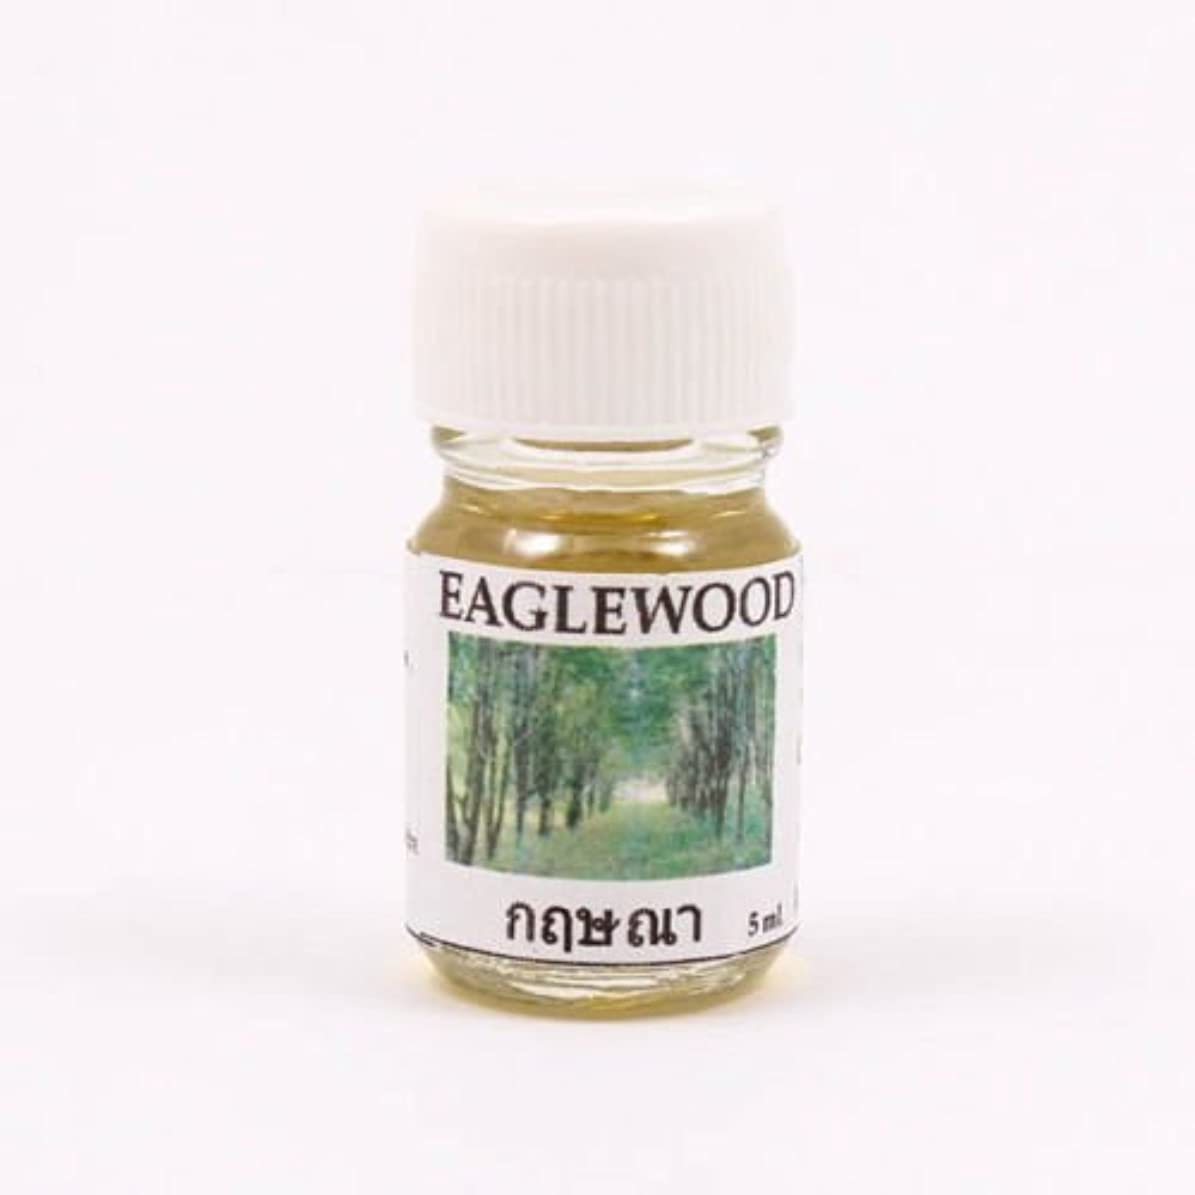 6X Eagle Wood Aroma Fragrance Essential Oil 5ML. Diffuser Burner Therapy